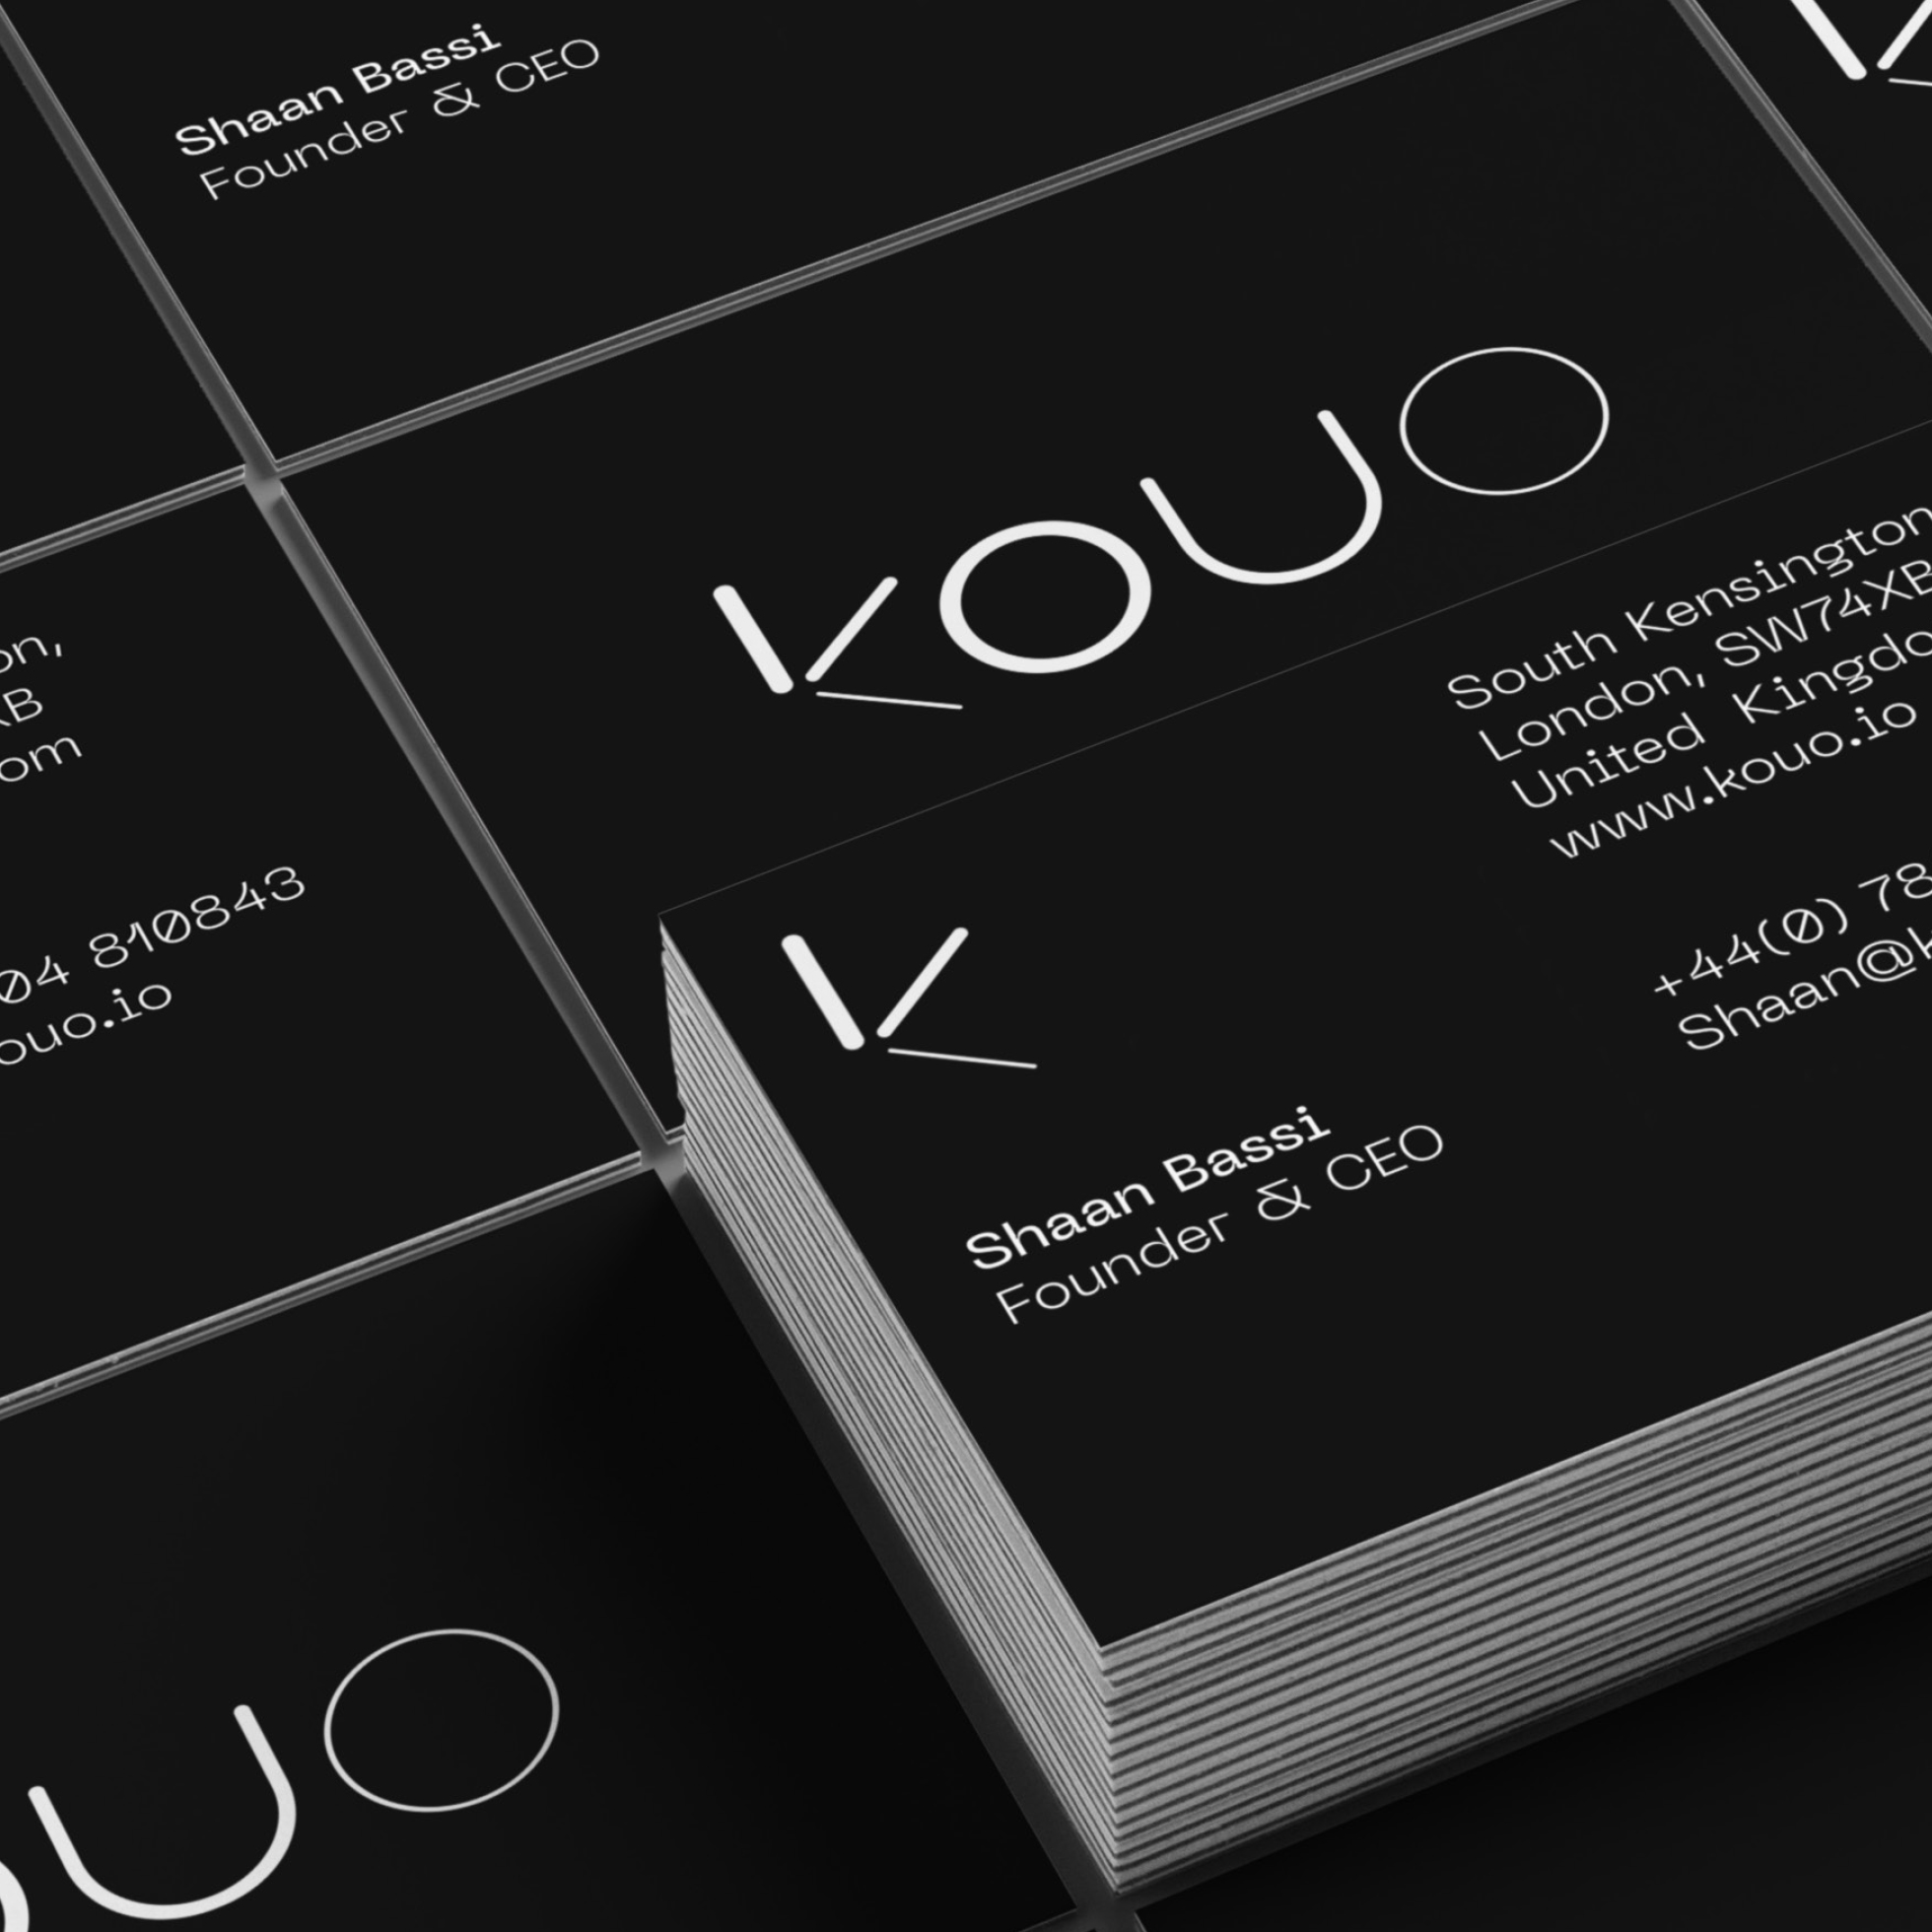 Kouo_Small_BusineesCards_